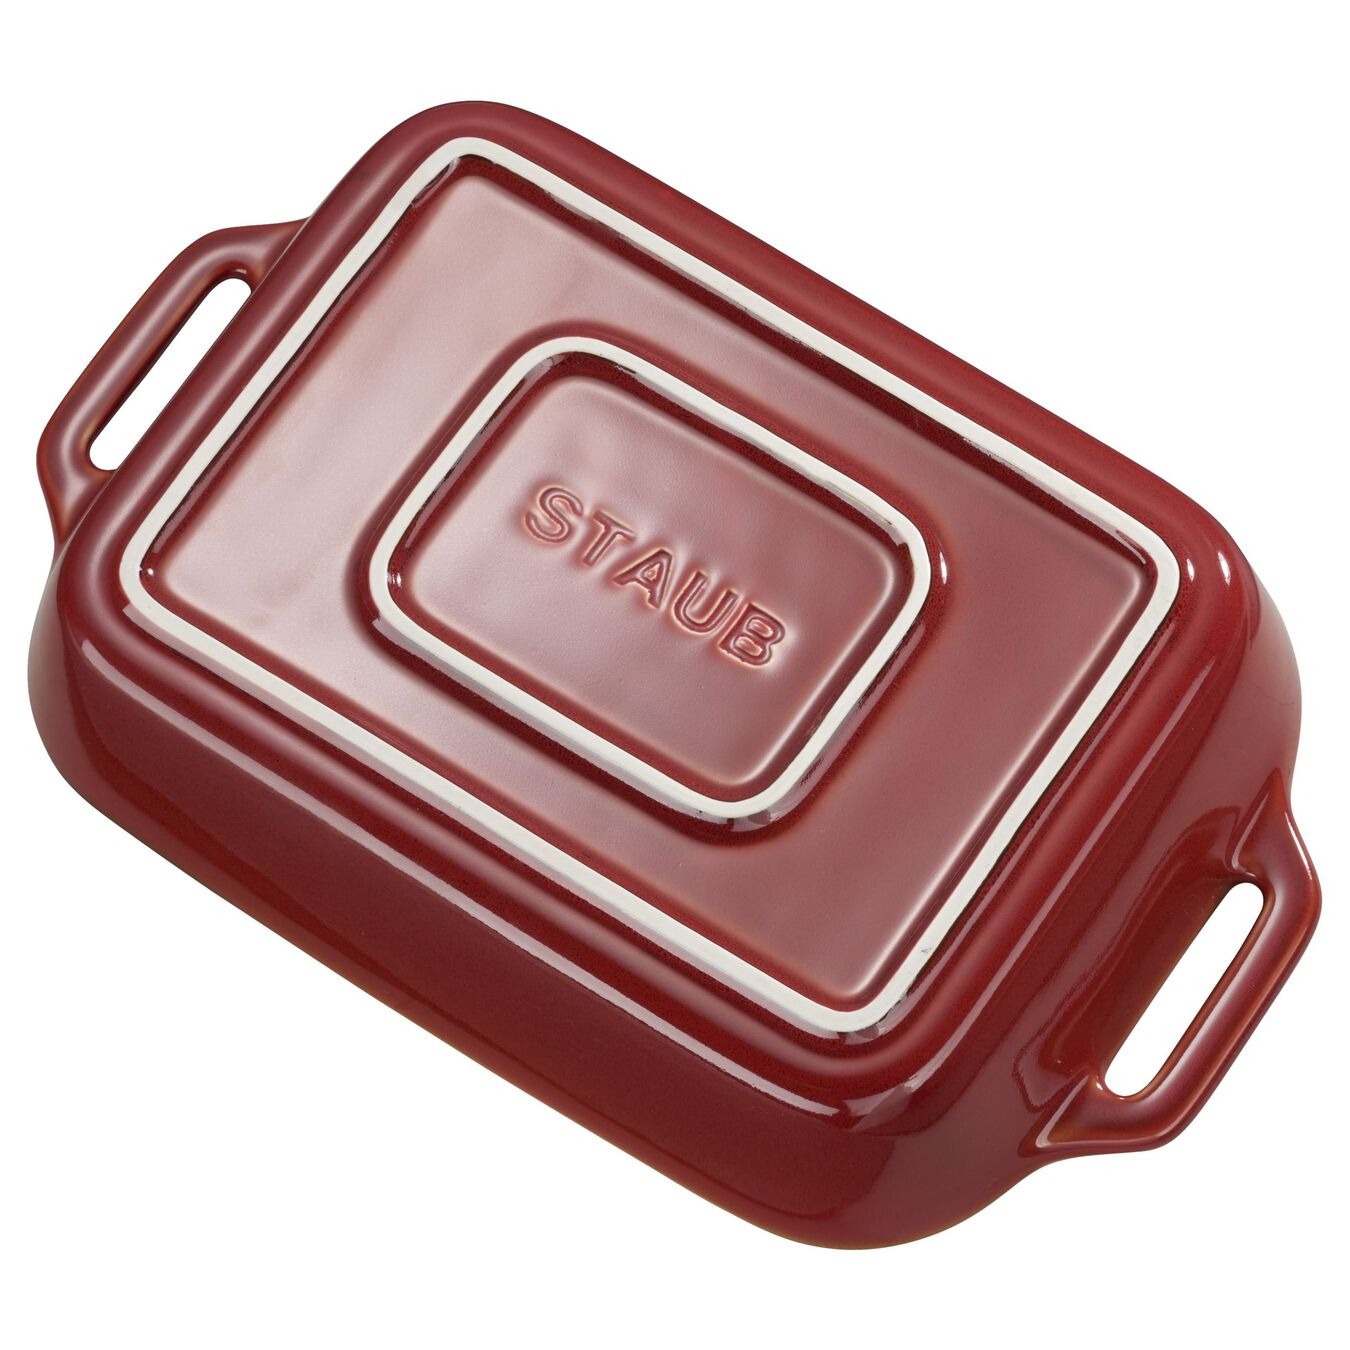 10.5-inch x 7.5-inch Rectangular Baking Dish - Rustic Red,,large 1